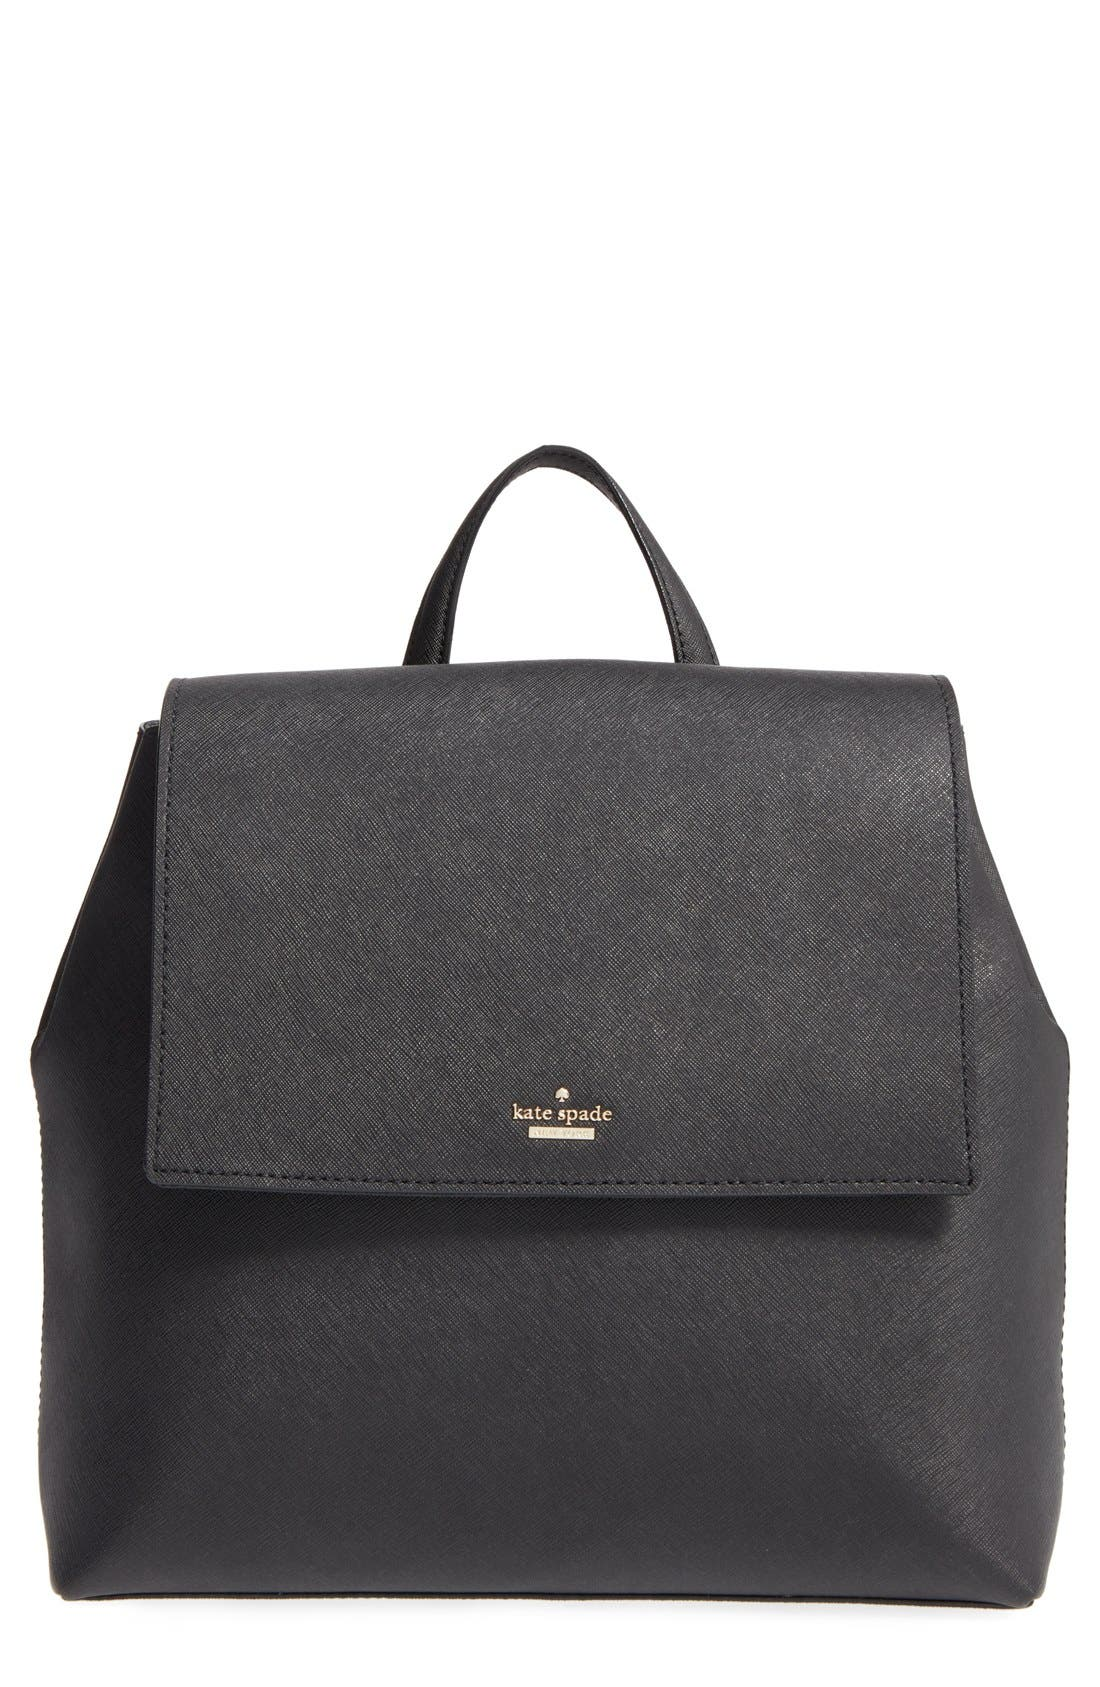 'cameron street - neema' leather backpack,                         Main,                         color, 001